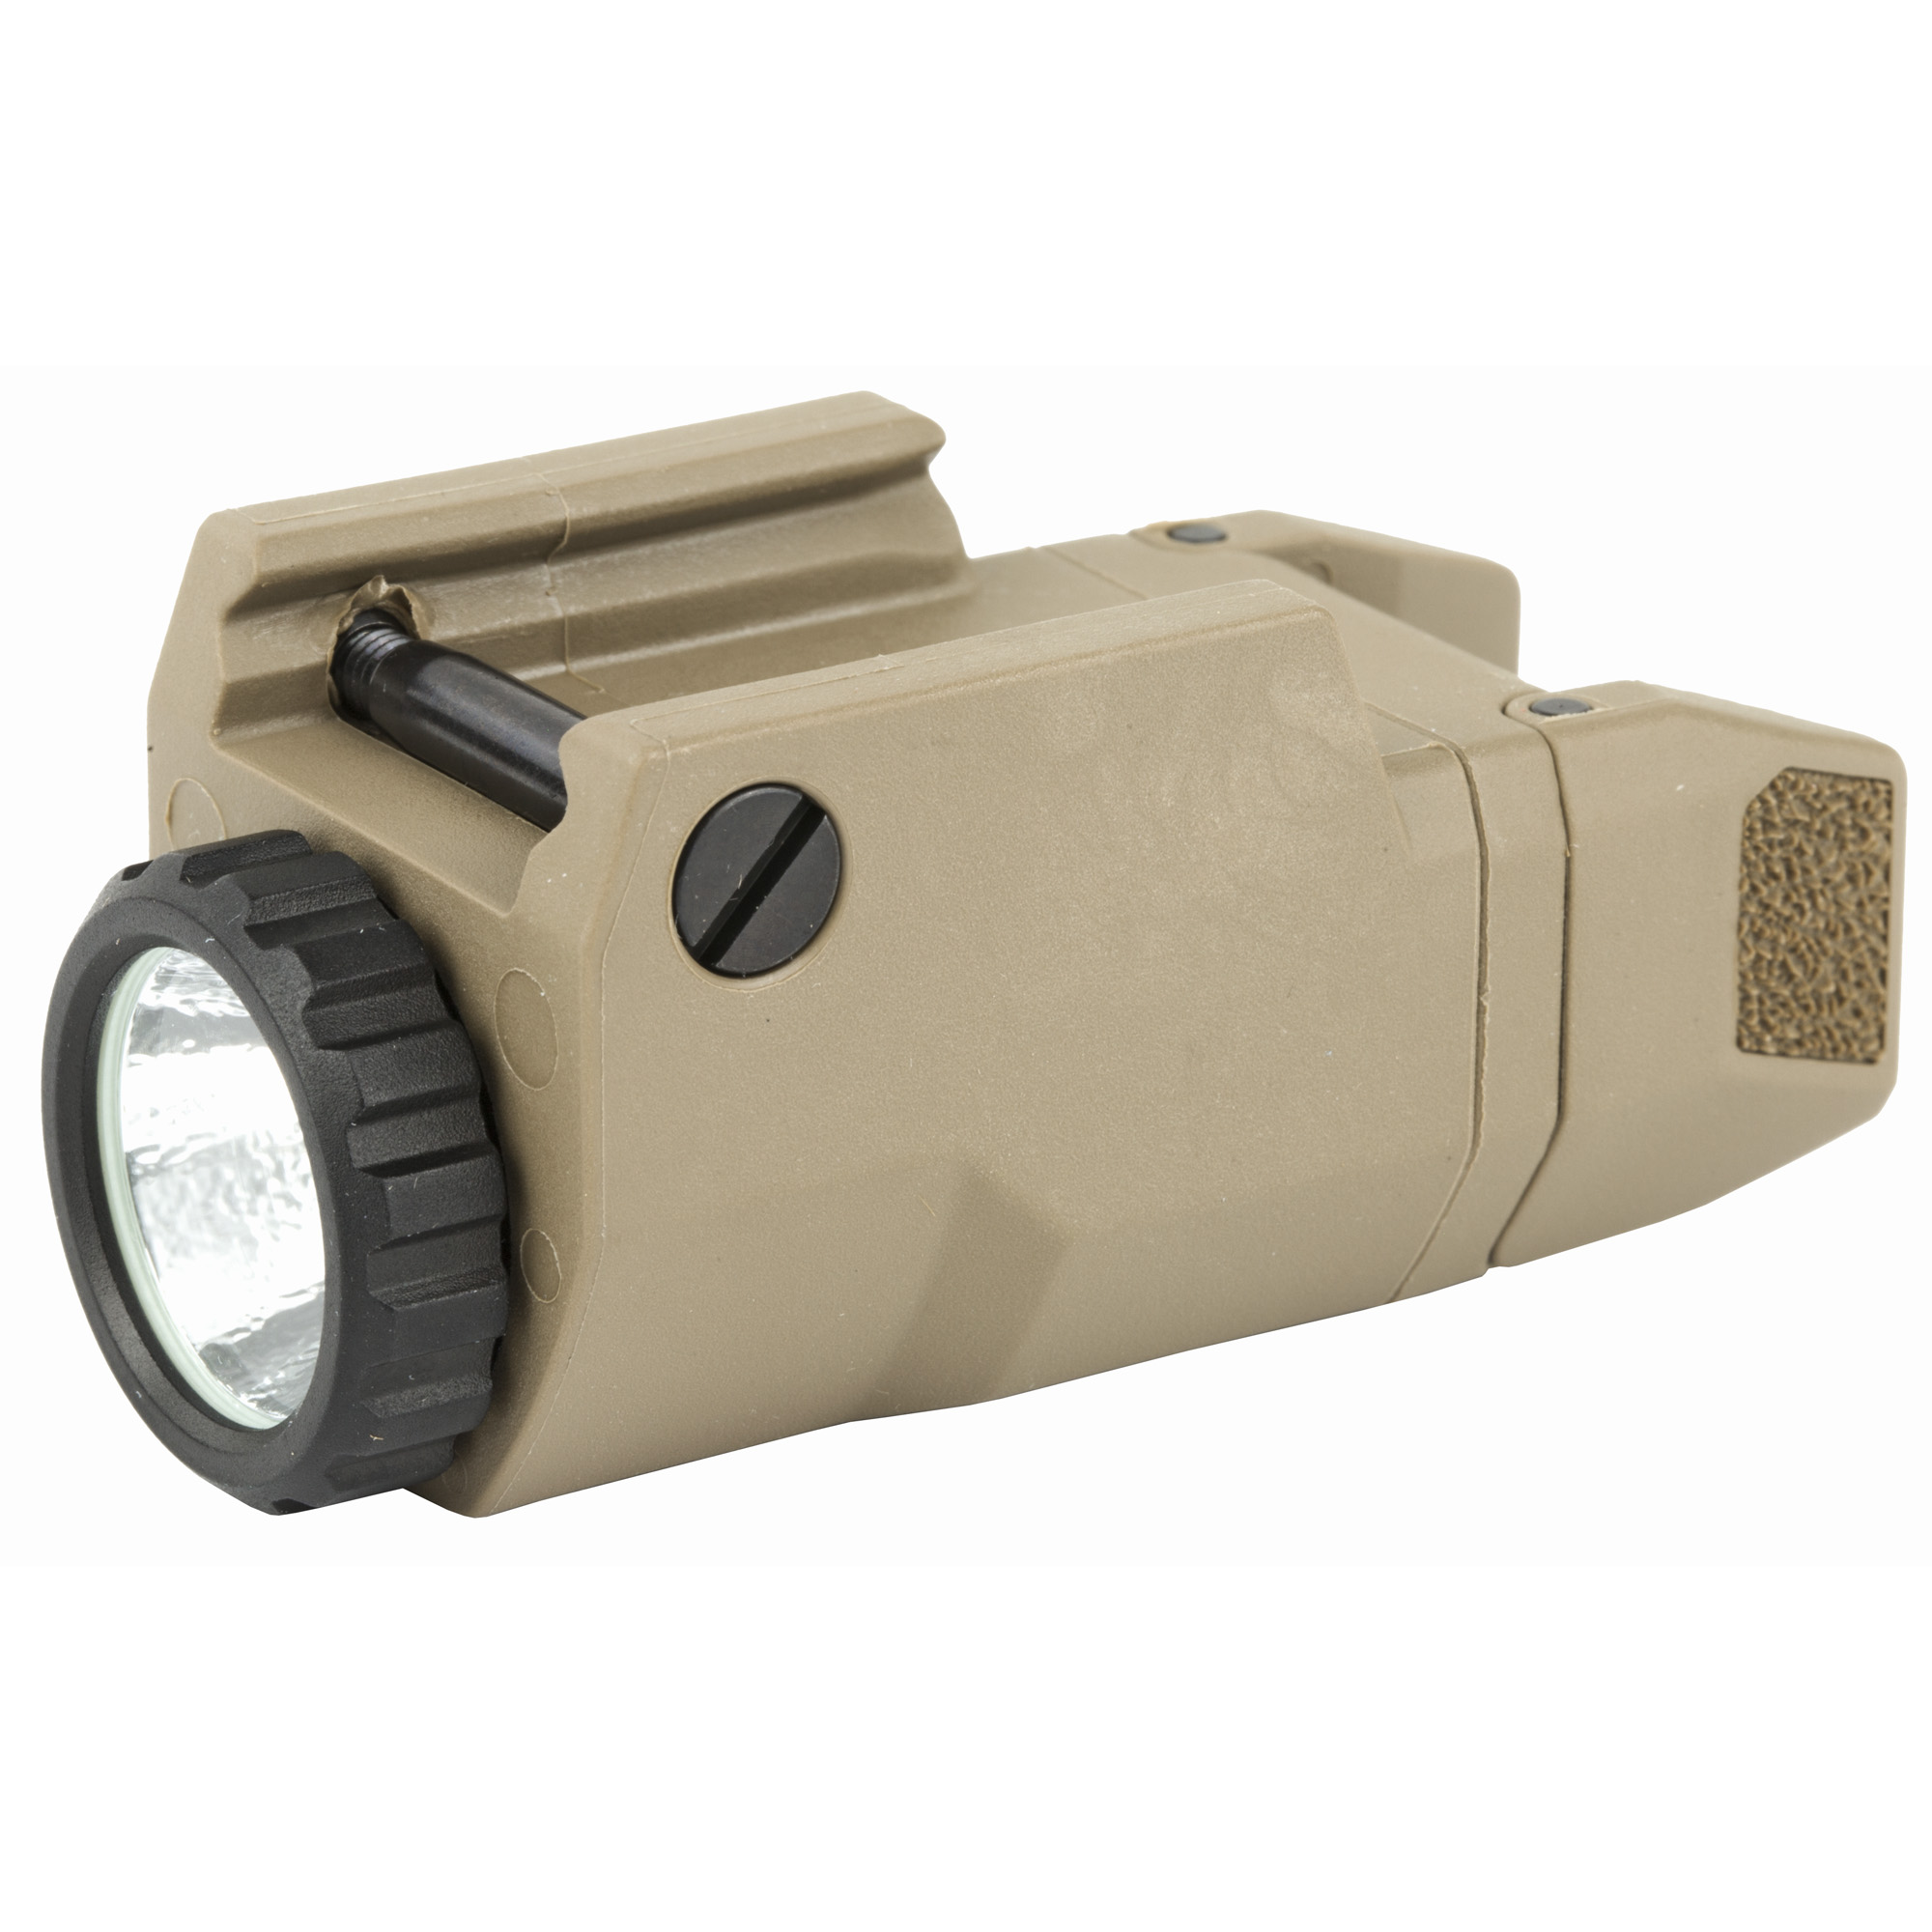 """The APL Compact by INFORCE provides 200 lumens of vibrant white light with up to 1.5 hours of runtime. Ultra-light and durable inside and out"""" weighing less than 2 ounces"""" it provides a high-intensity tight beam to fill your field of view for close to mid-range target identification. The water-resistant"""" glass reinforced polymer body is incredibly powerful and ultra-compact. Extensively tested"""" it mounts completely flush with the muzzle of a Glock 19 and offers constant and momentary operating modes. Textured paddles for a non-slip grip and ambidextrous on/off switches enable left or right hand activation. In addition"""" the easy-to-operate lockout system ensures the light isn't activated until you're ready."""